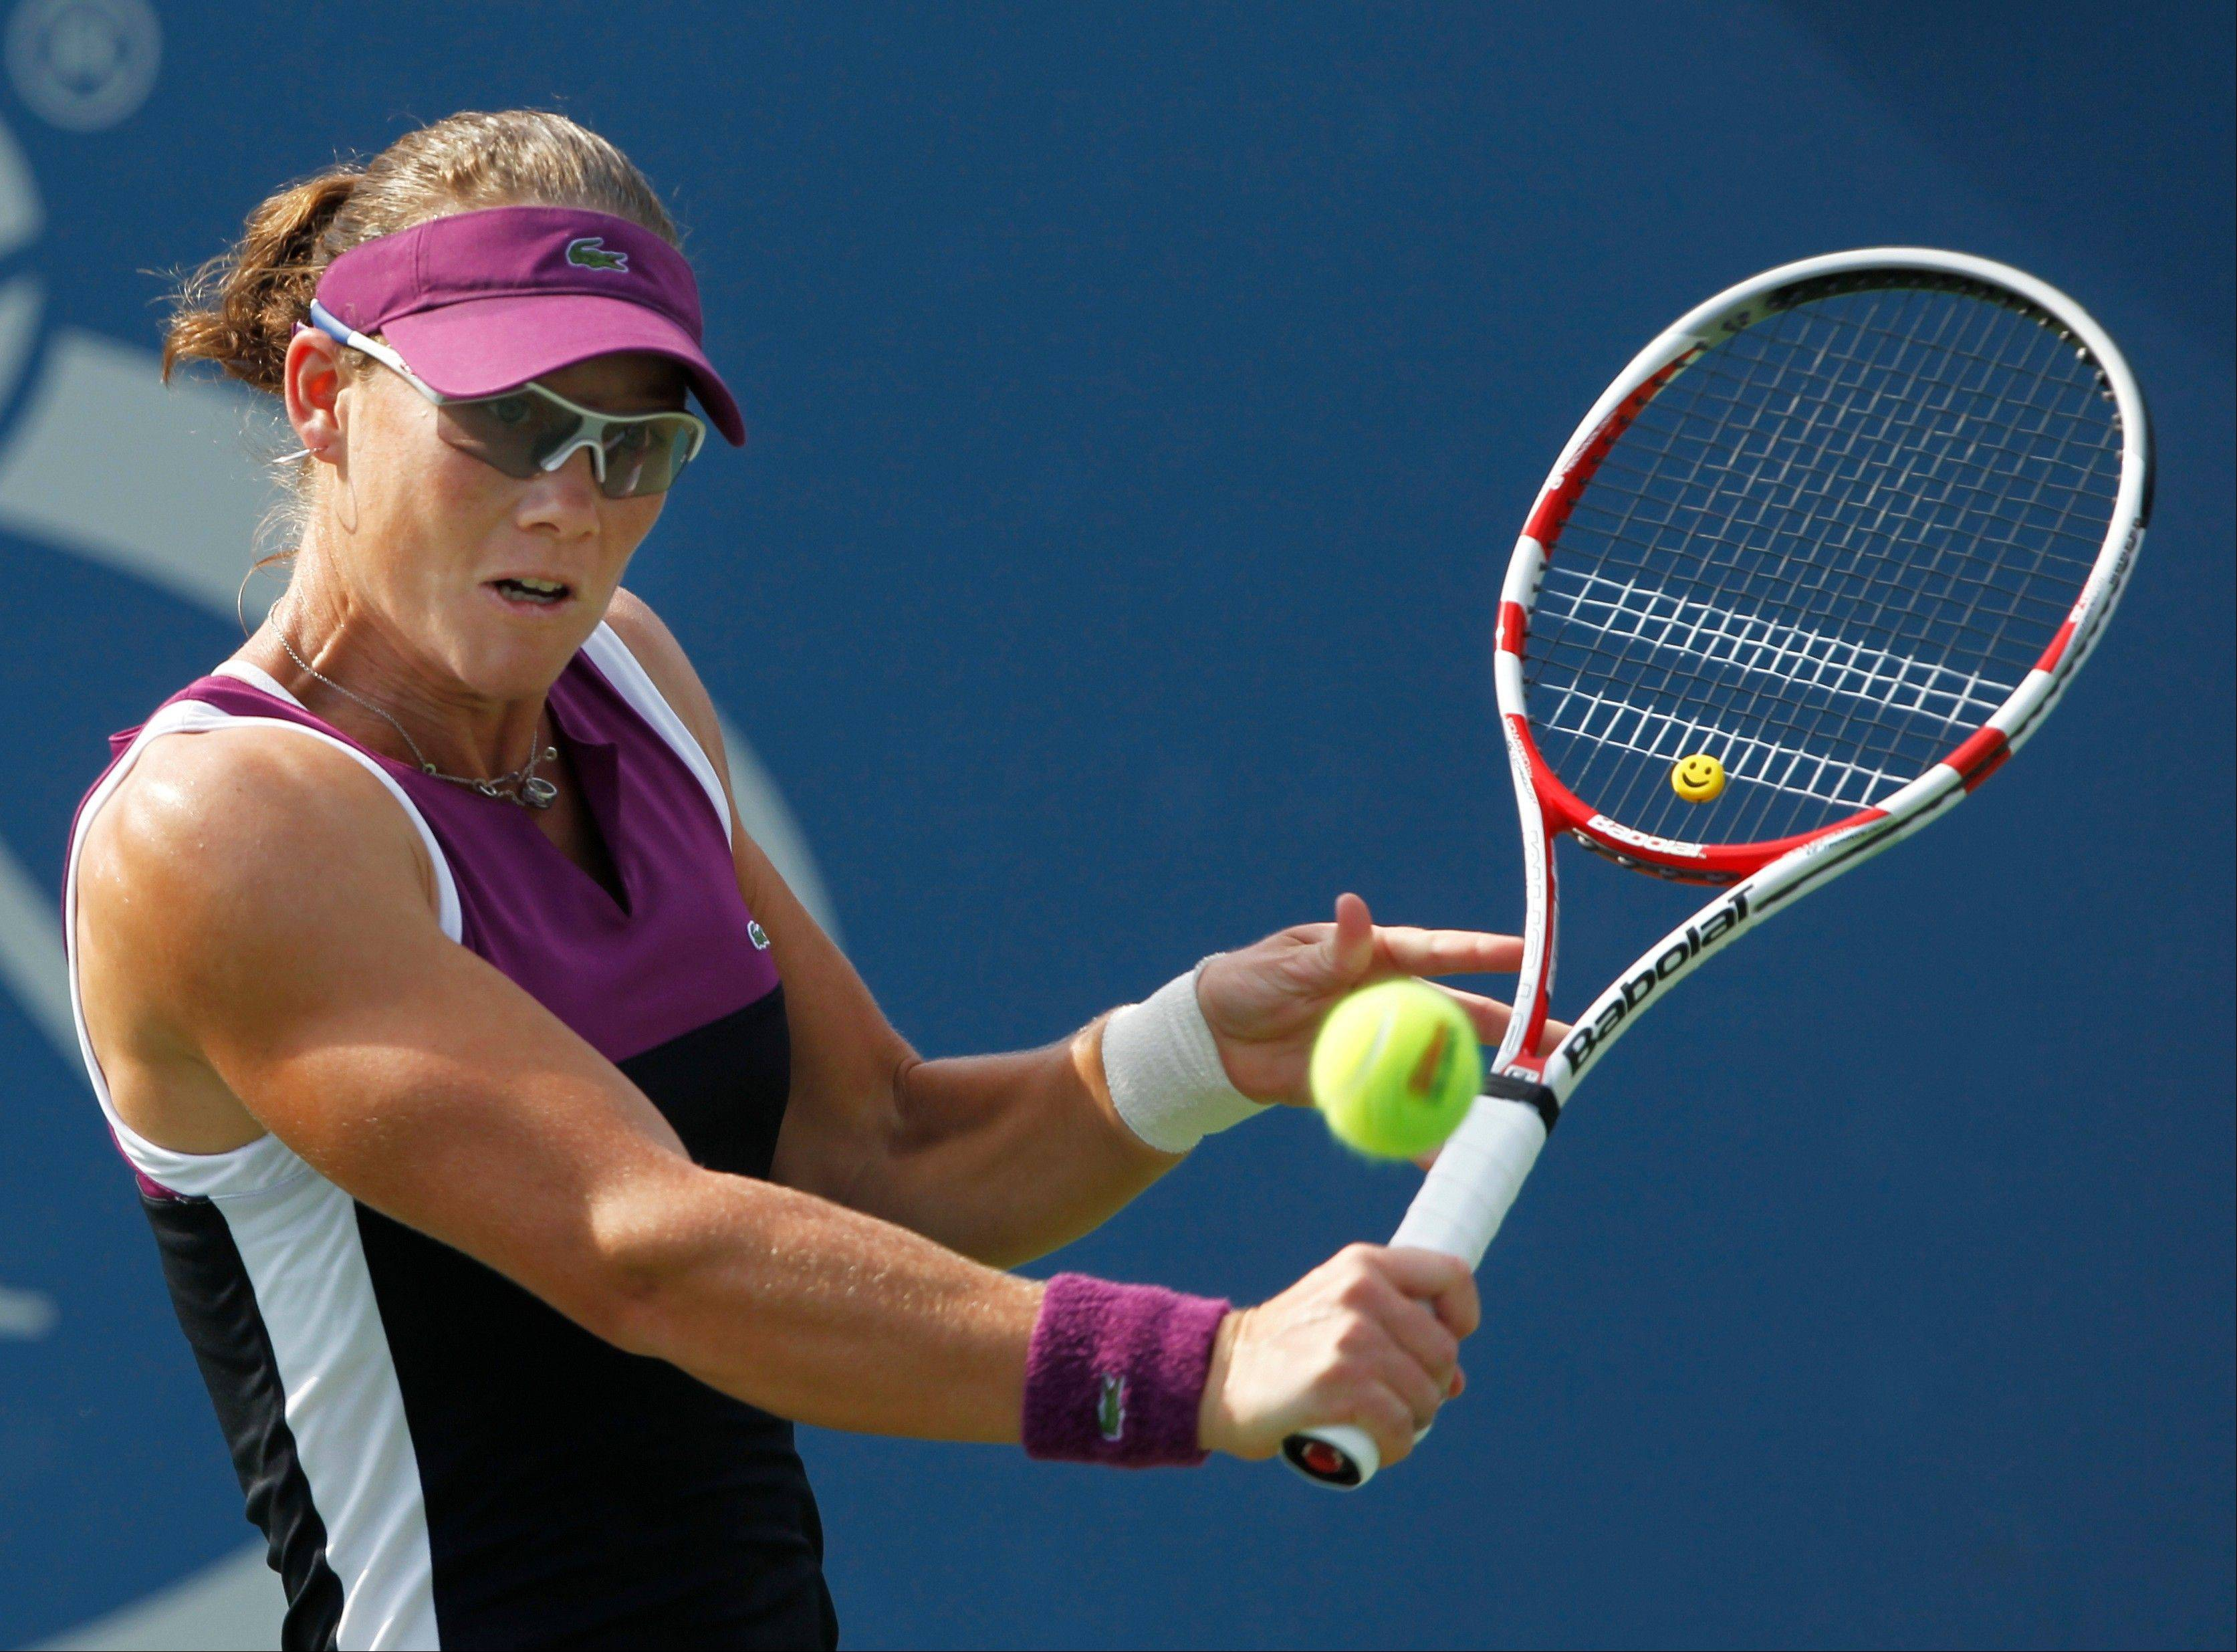 An Aug. 31, 2011 file photo shows Samantha Stosur of Australia returning a shot to Coco Vandeweghe during the U.S. Open tennis tournament in New York. The defending U.S. Open champion, Stosur is among the fittest women on the WTA tour.